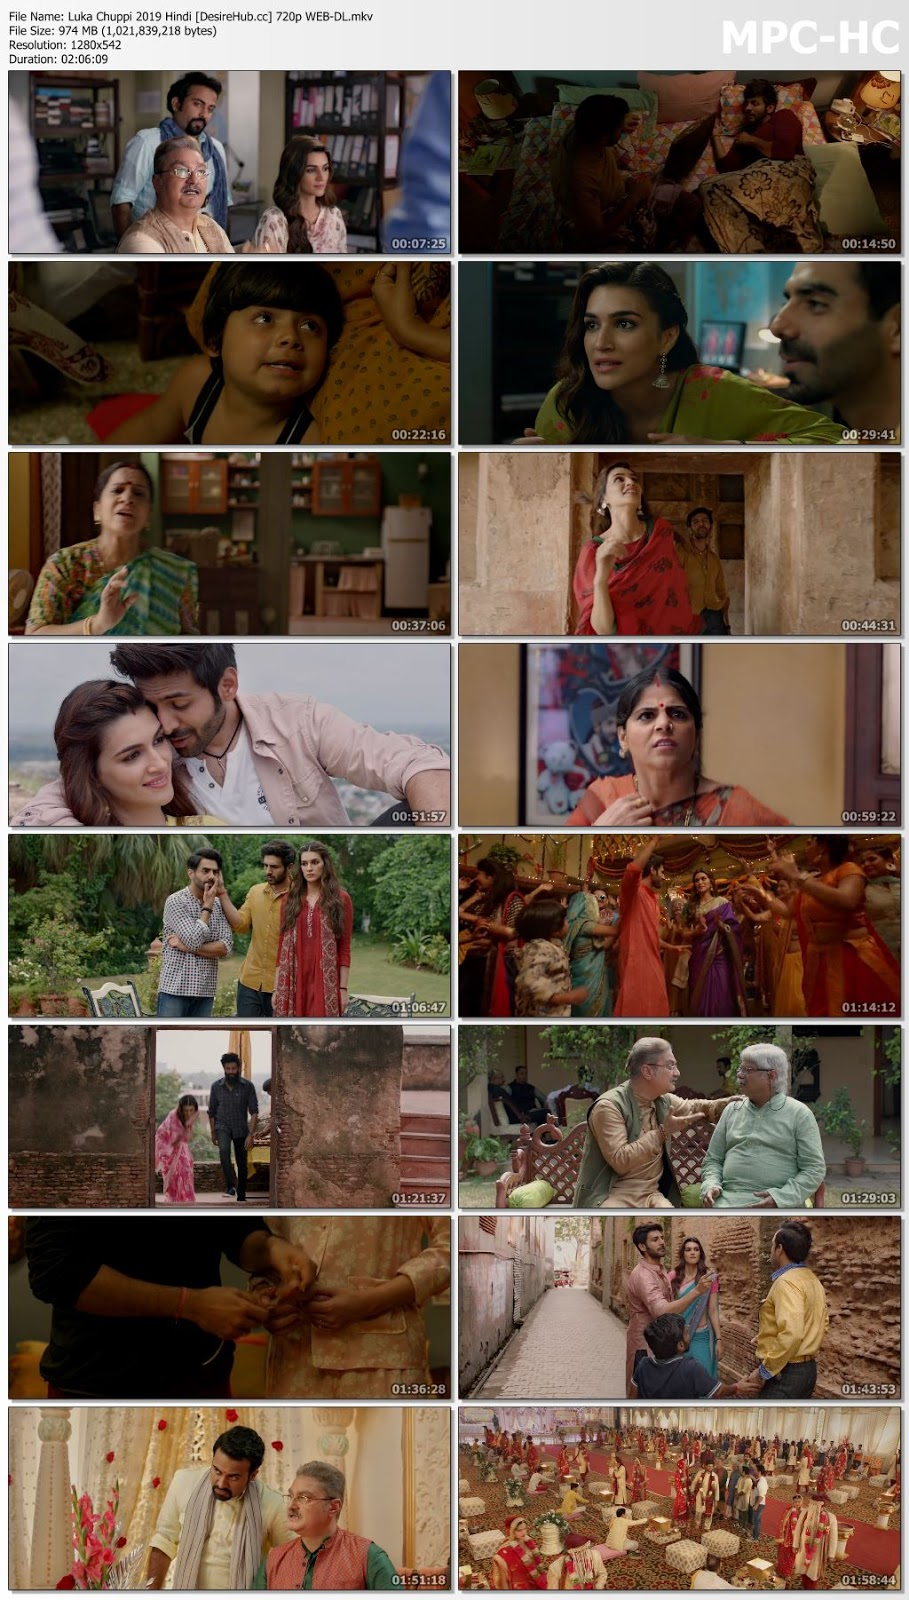 Luka Chuppi 2019 Hindi 720p WEB-DL 950MB Desirehub